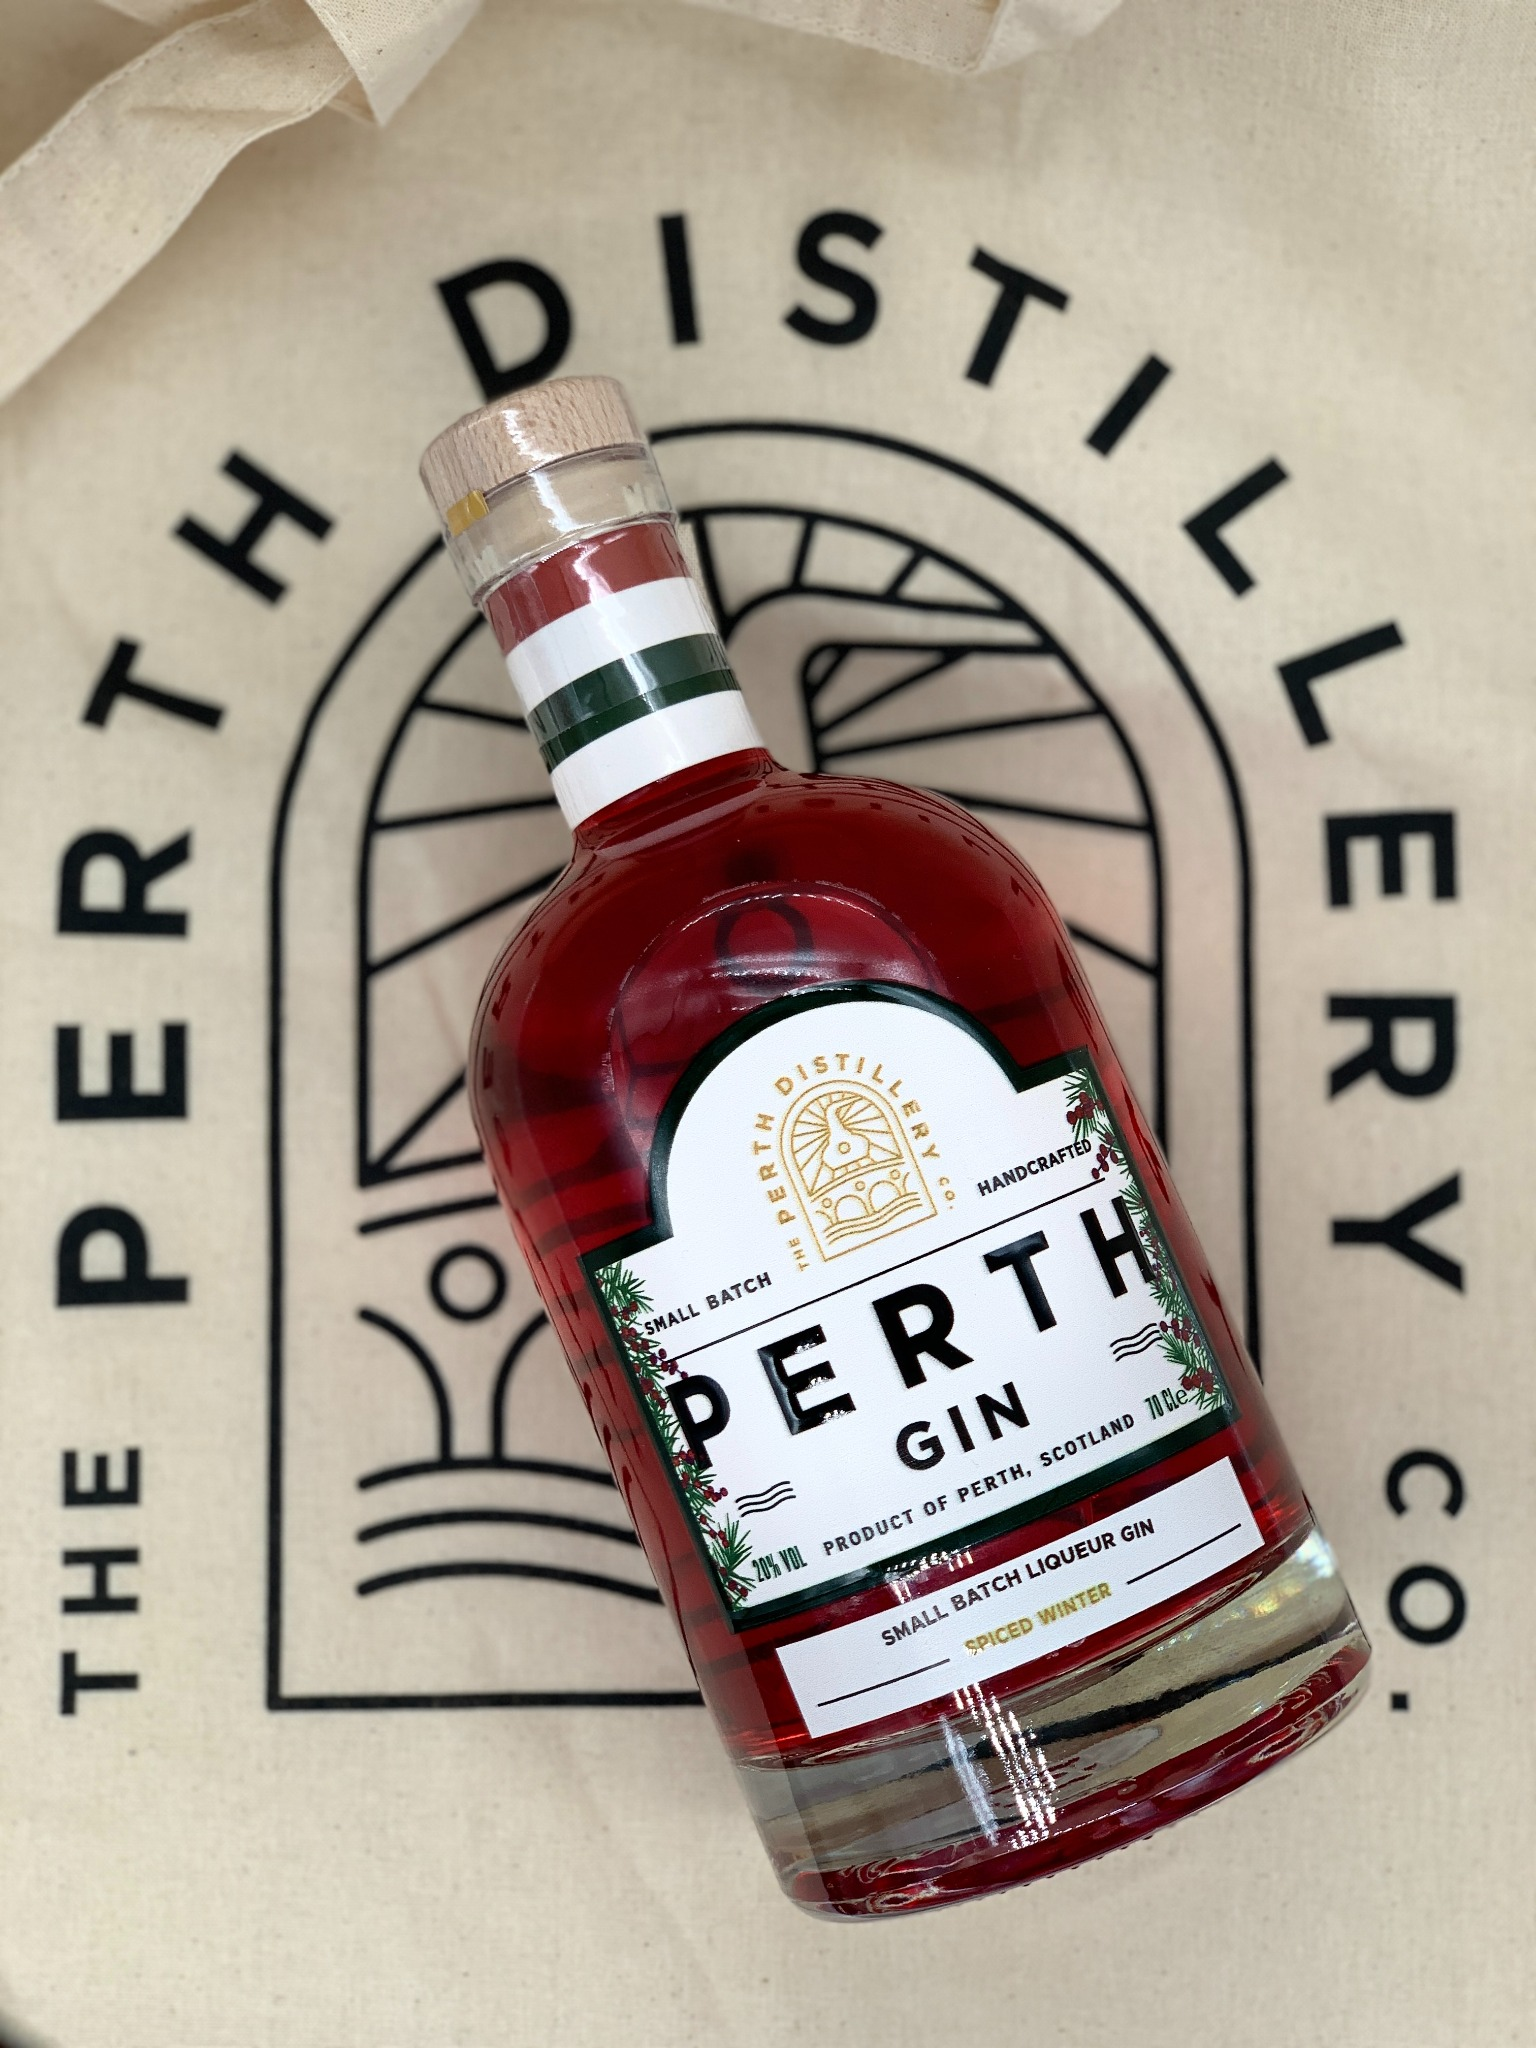 Perth Gin Winter Spiced Gin Liqueur 70cl - MOTHERS DAY Delivery SUNDAY 14th March 2021